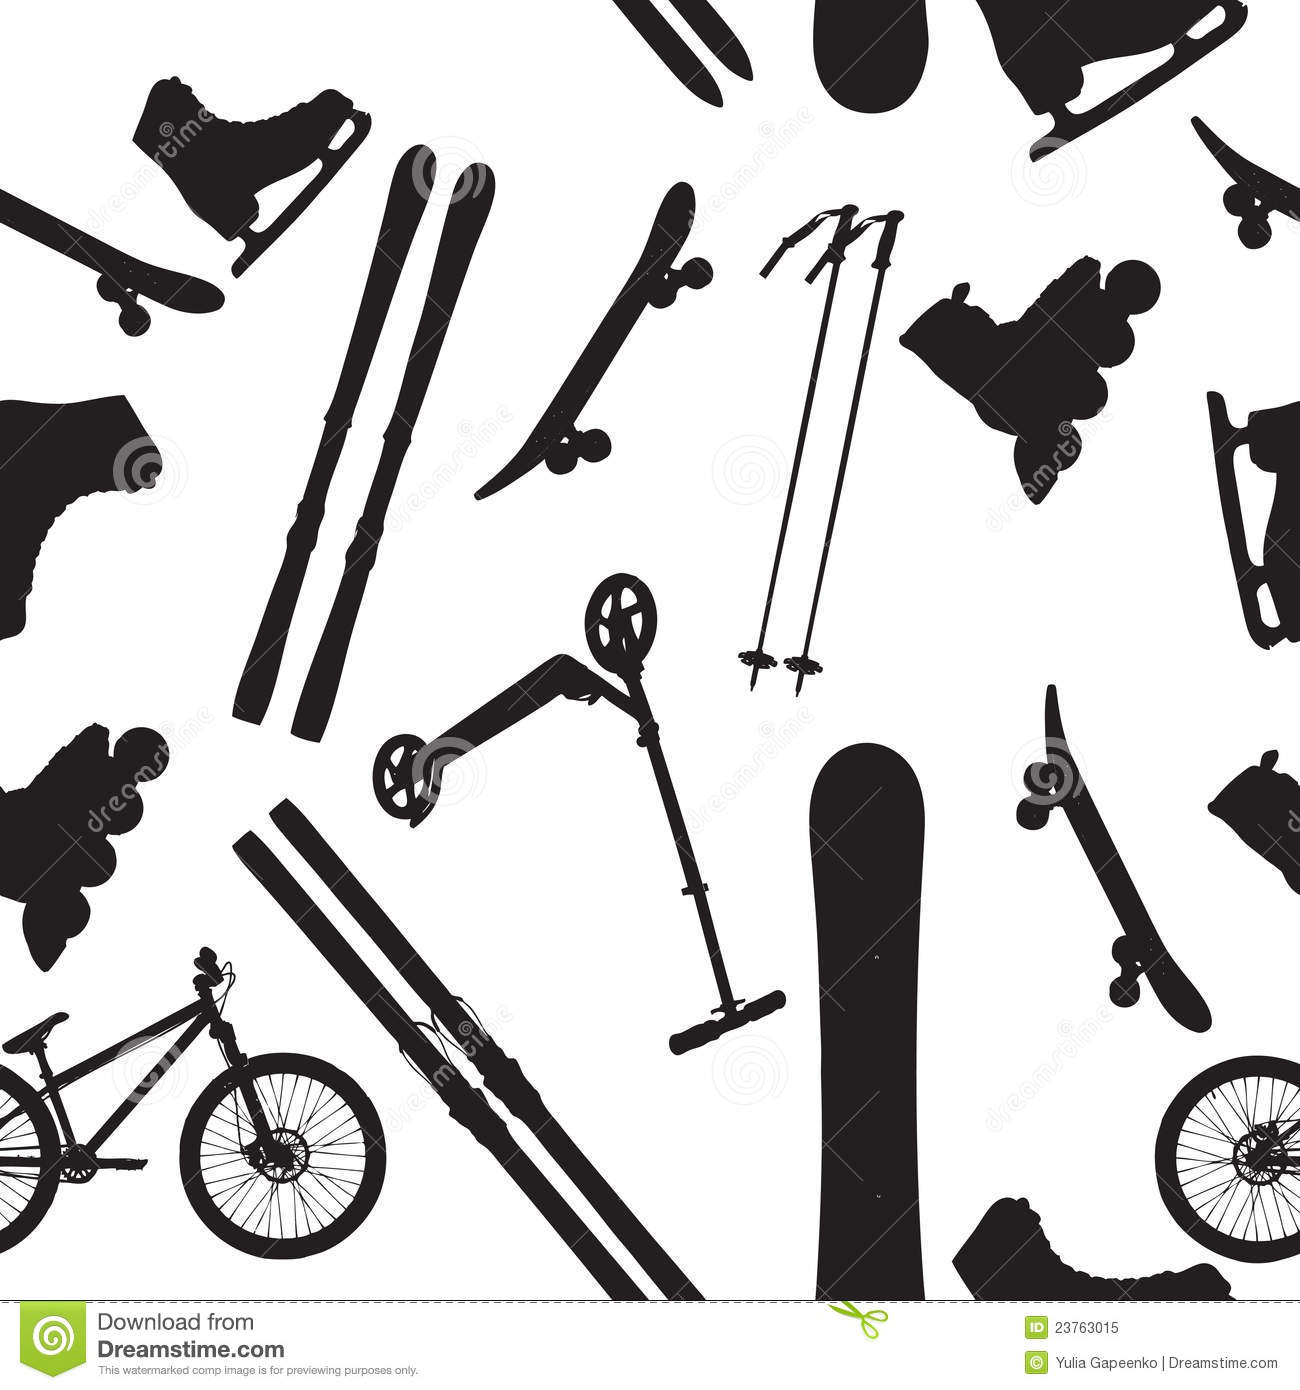 Sports Equipment Silhouette Royalty Free Stock Photo